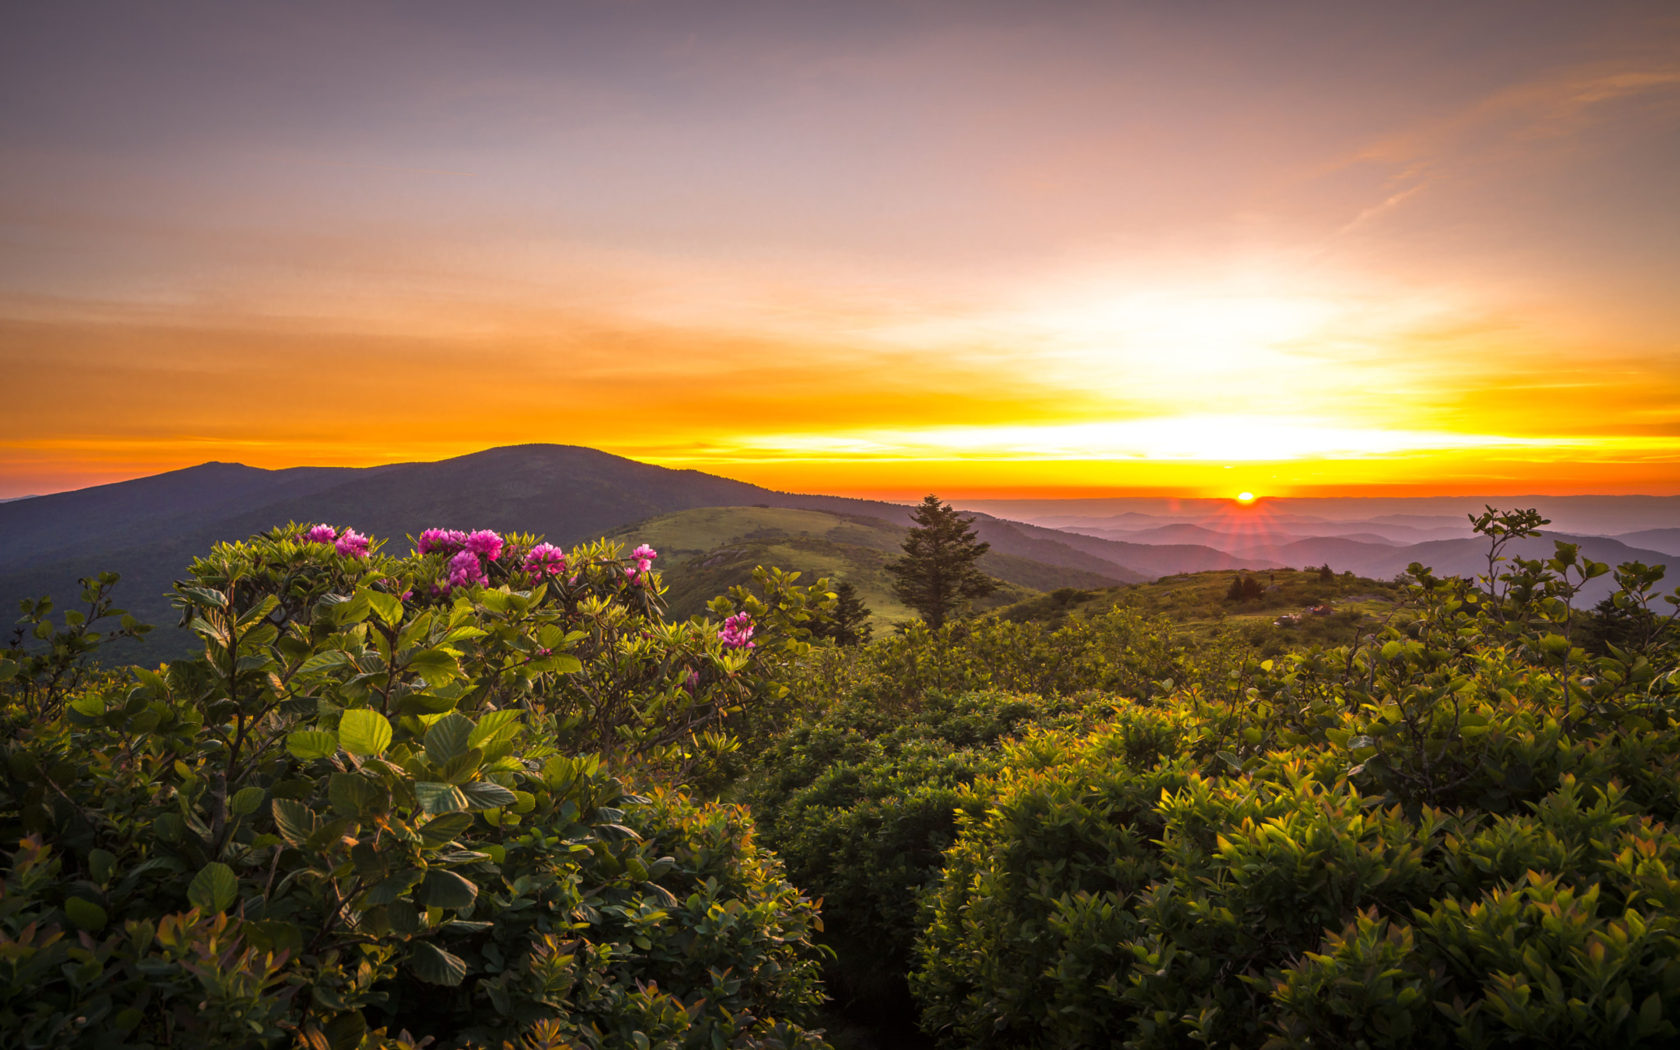 Kangaroo Wallpaper Hd Sunset Rhododenrons Blooming View From Roan Mountain To